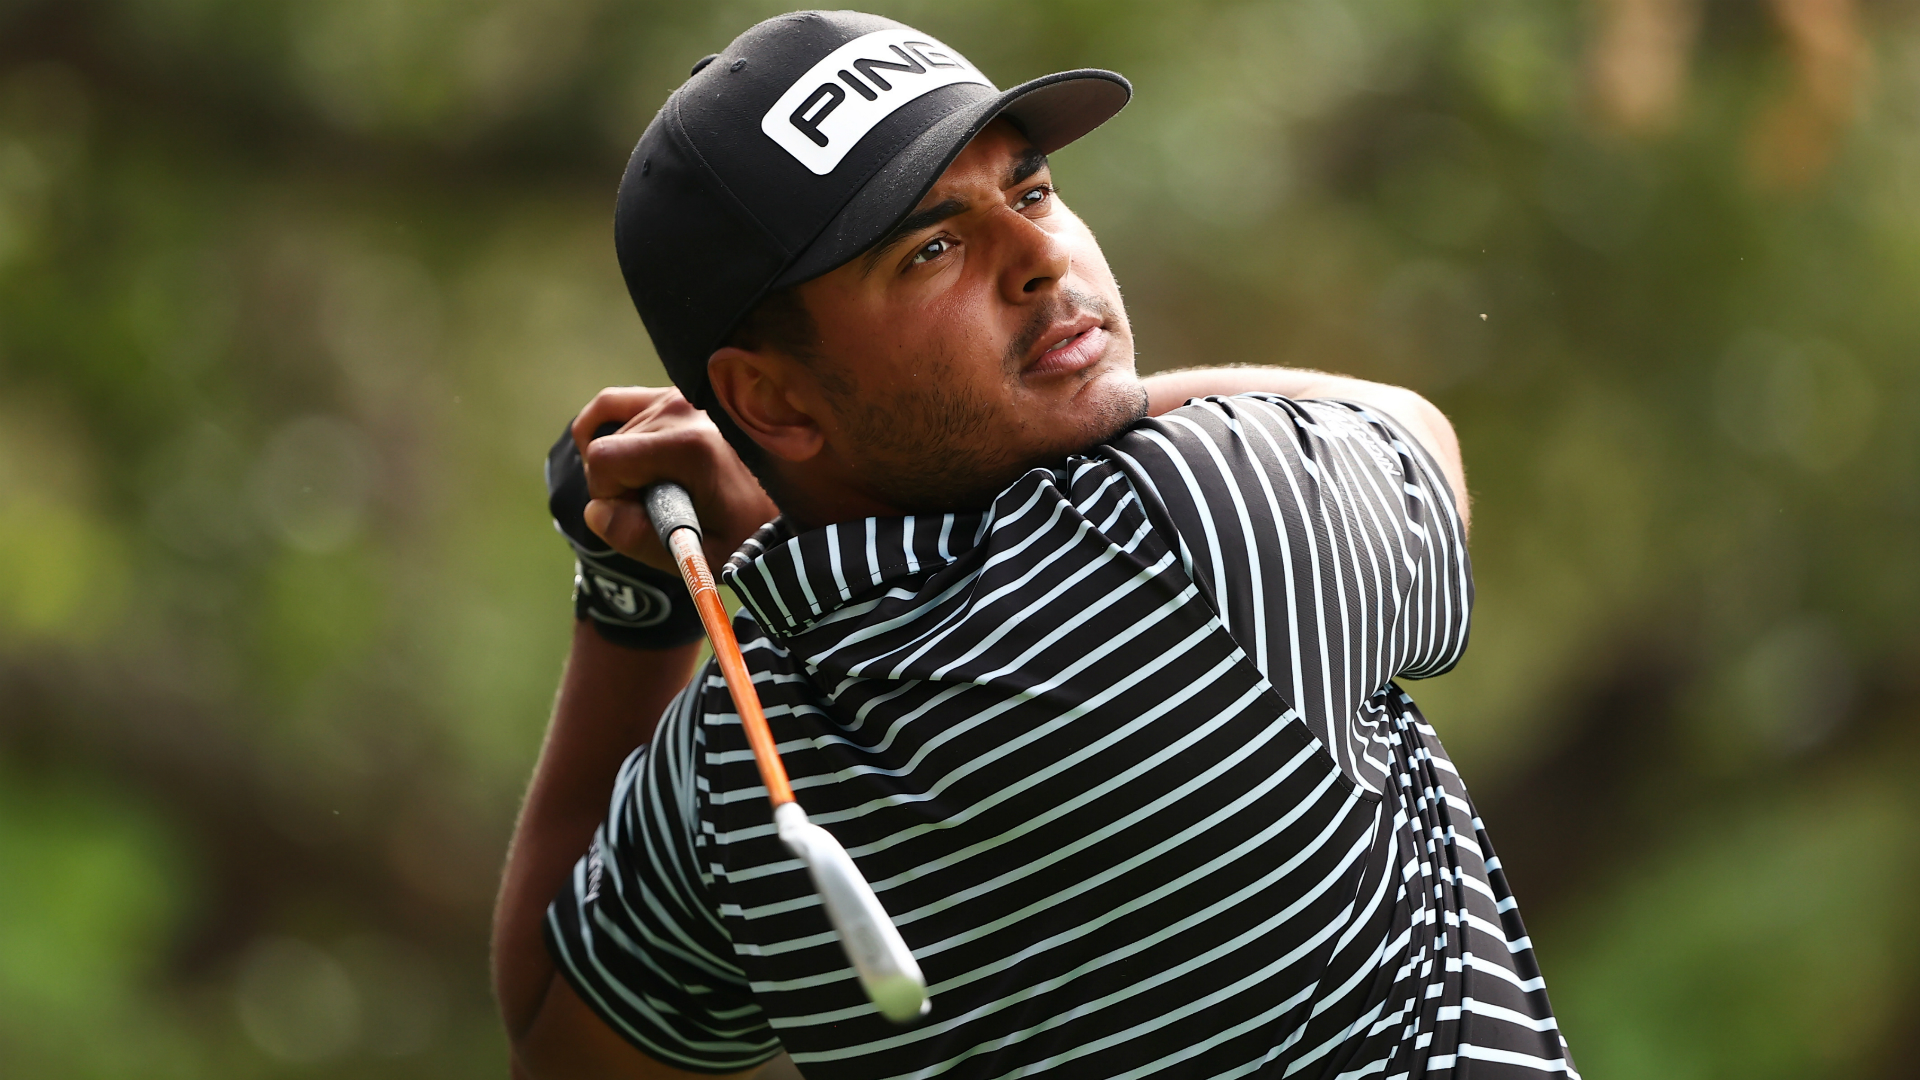 Munoz leads Zozo Championship as Tiger Woods stumbles with opening 76